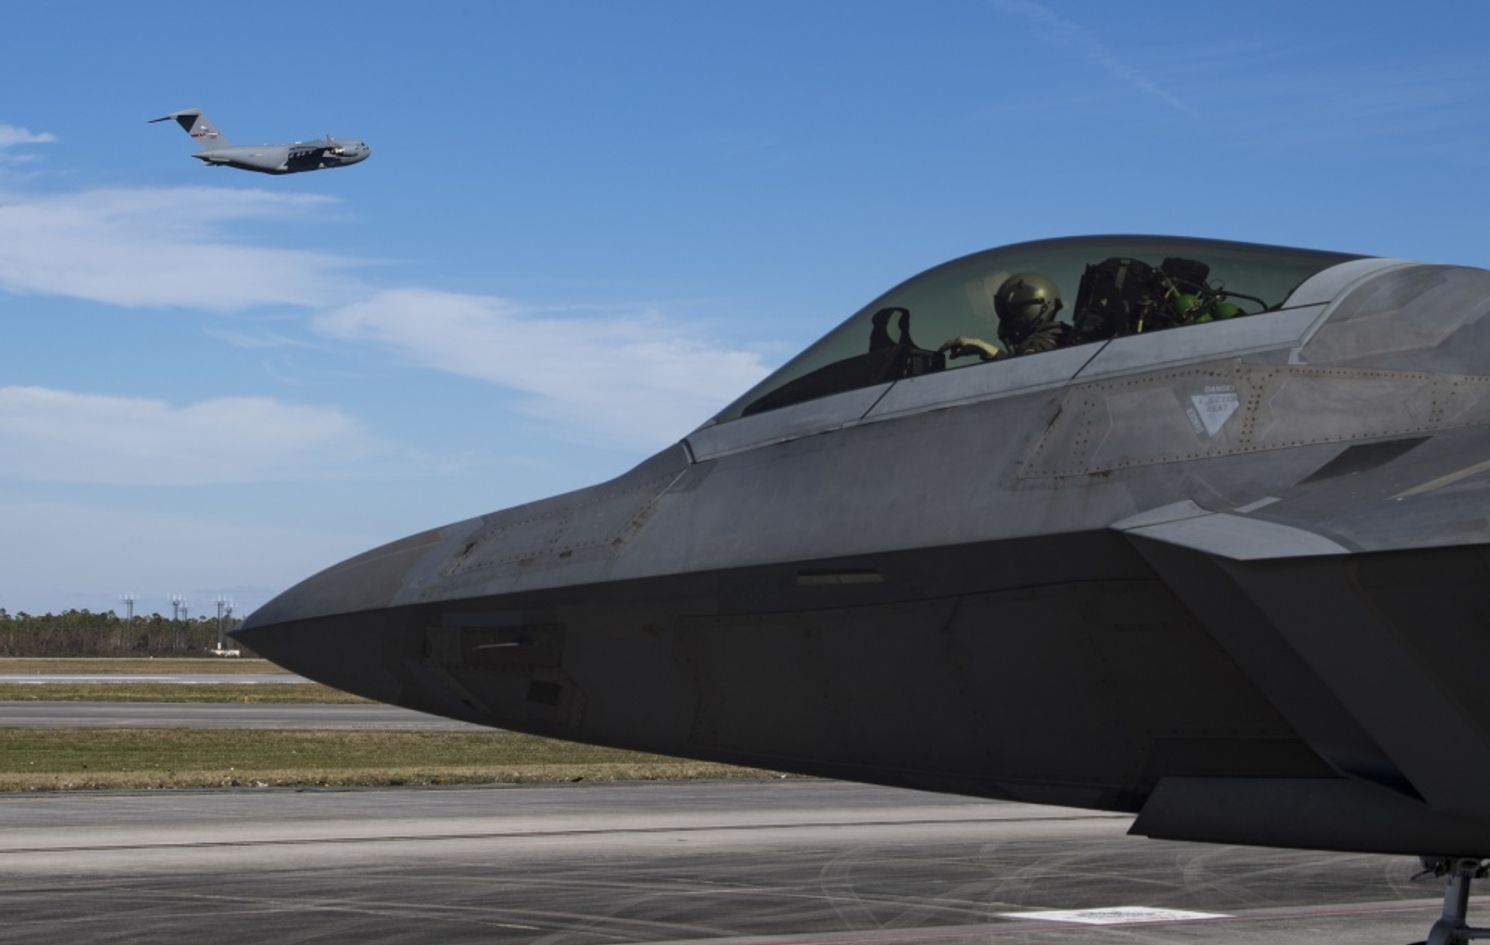 Iran's Worst Fear: America Gives Israel F-22s and B-52 Bombers